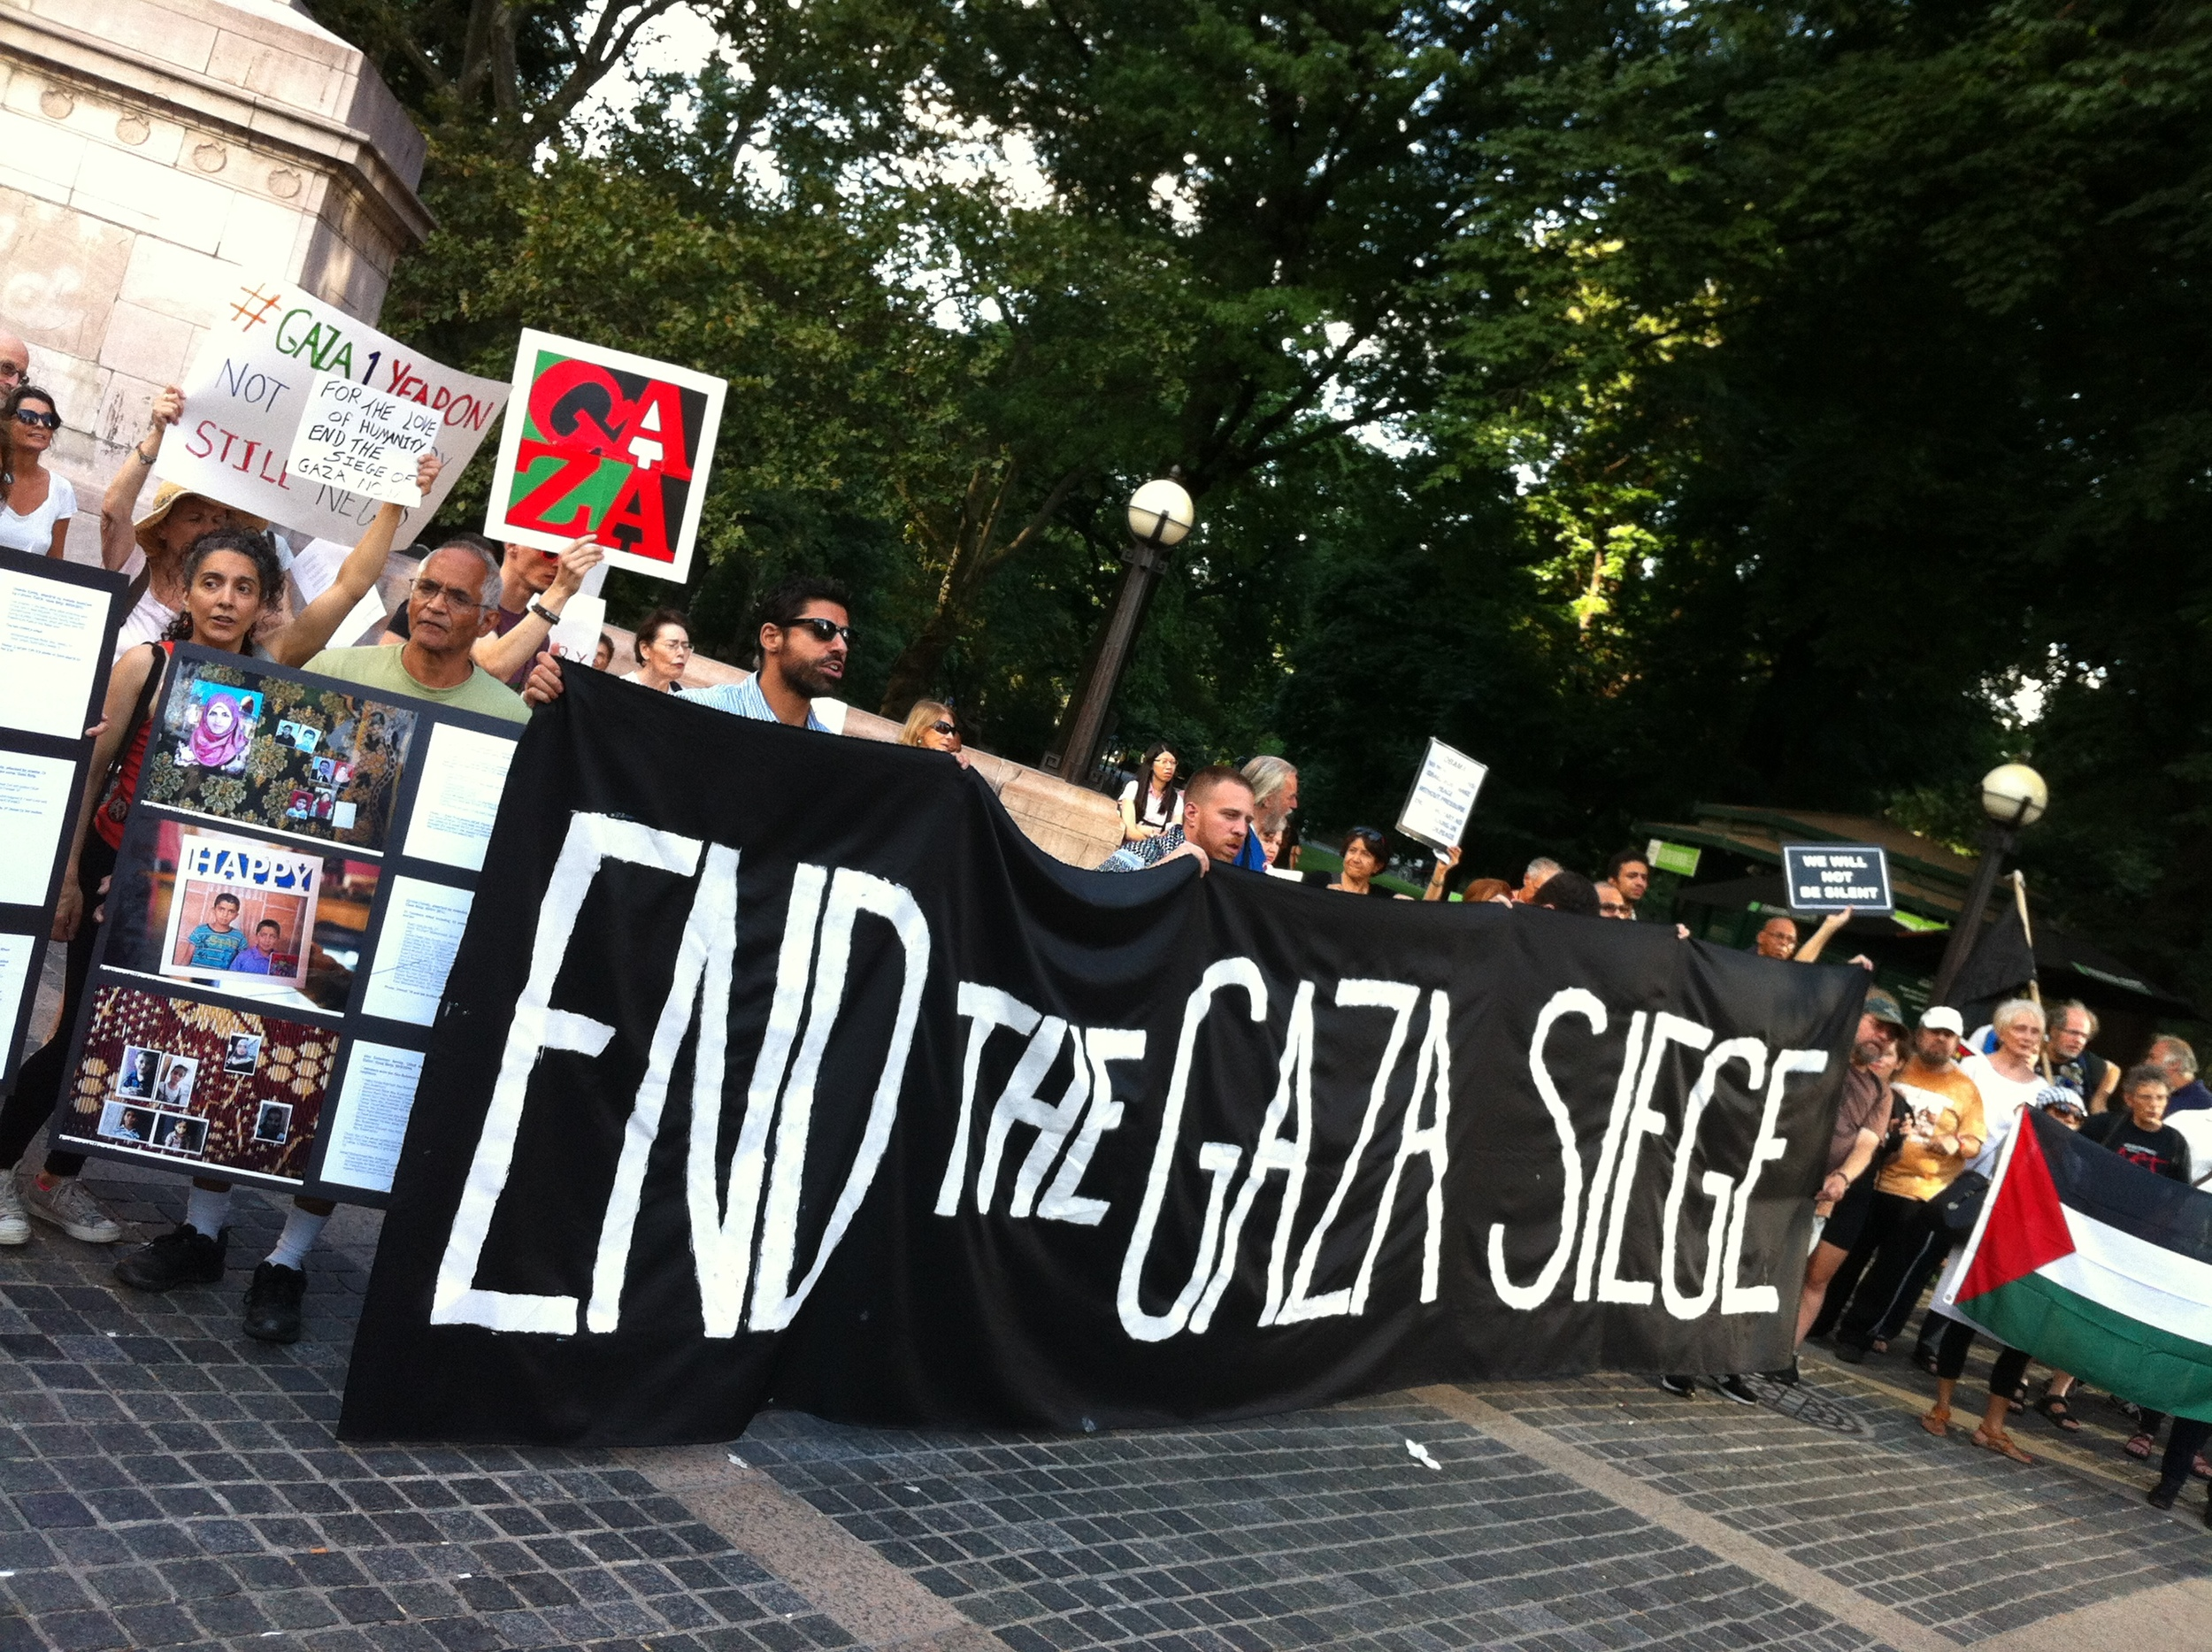 A march for peace wound its way through the Upper West Side of Manhattan and ended at Columbus Circle on 26 August 2015, marking the one year anniversary of the end of the 2014 Israel-Gaza conflict that led to the deaths of over 2,000 Palestinians. The march was organised by the group, Jewish Voice for Peace, New York City Chapter. Source : Louis Flores/Progress Queens